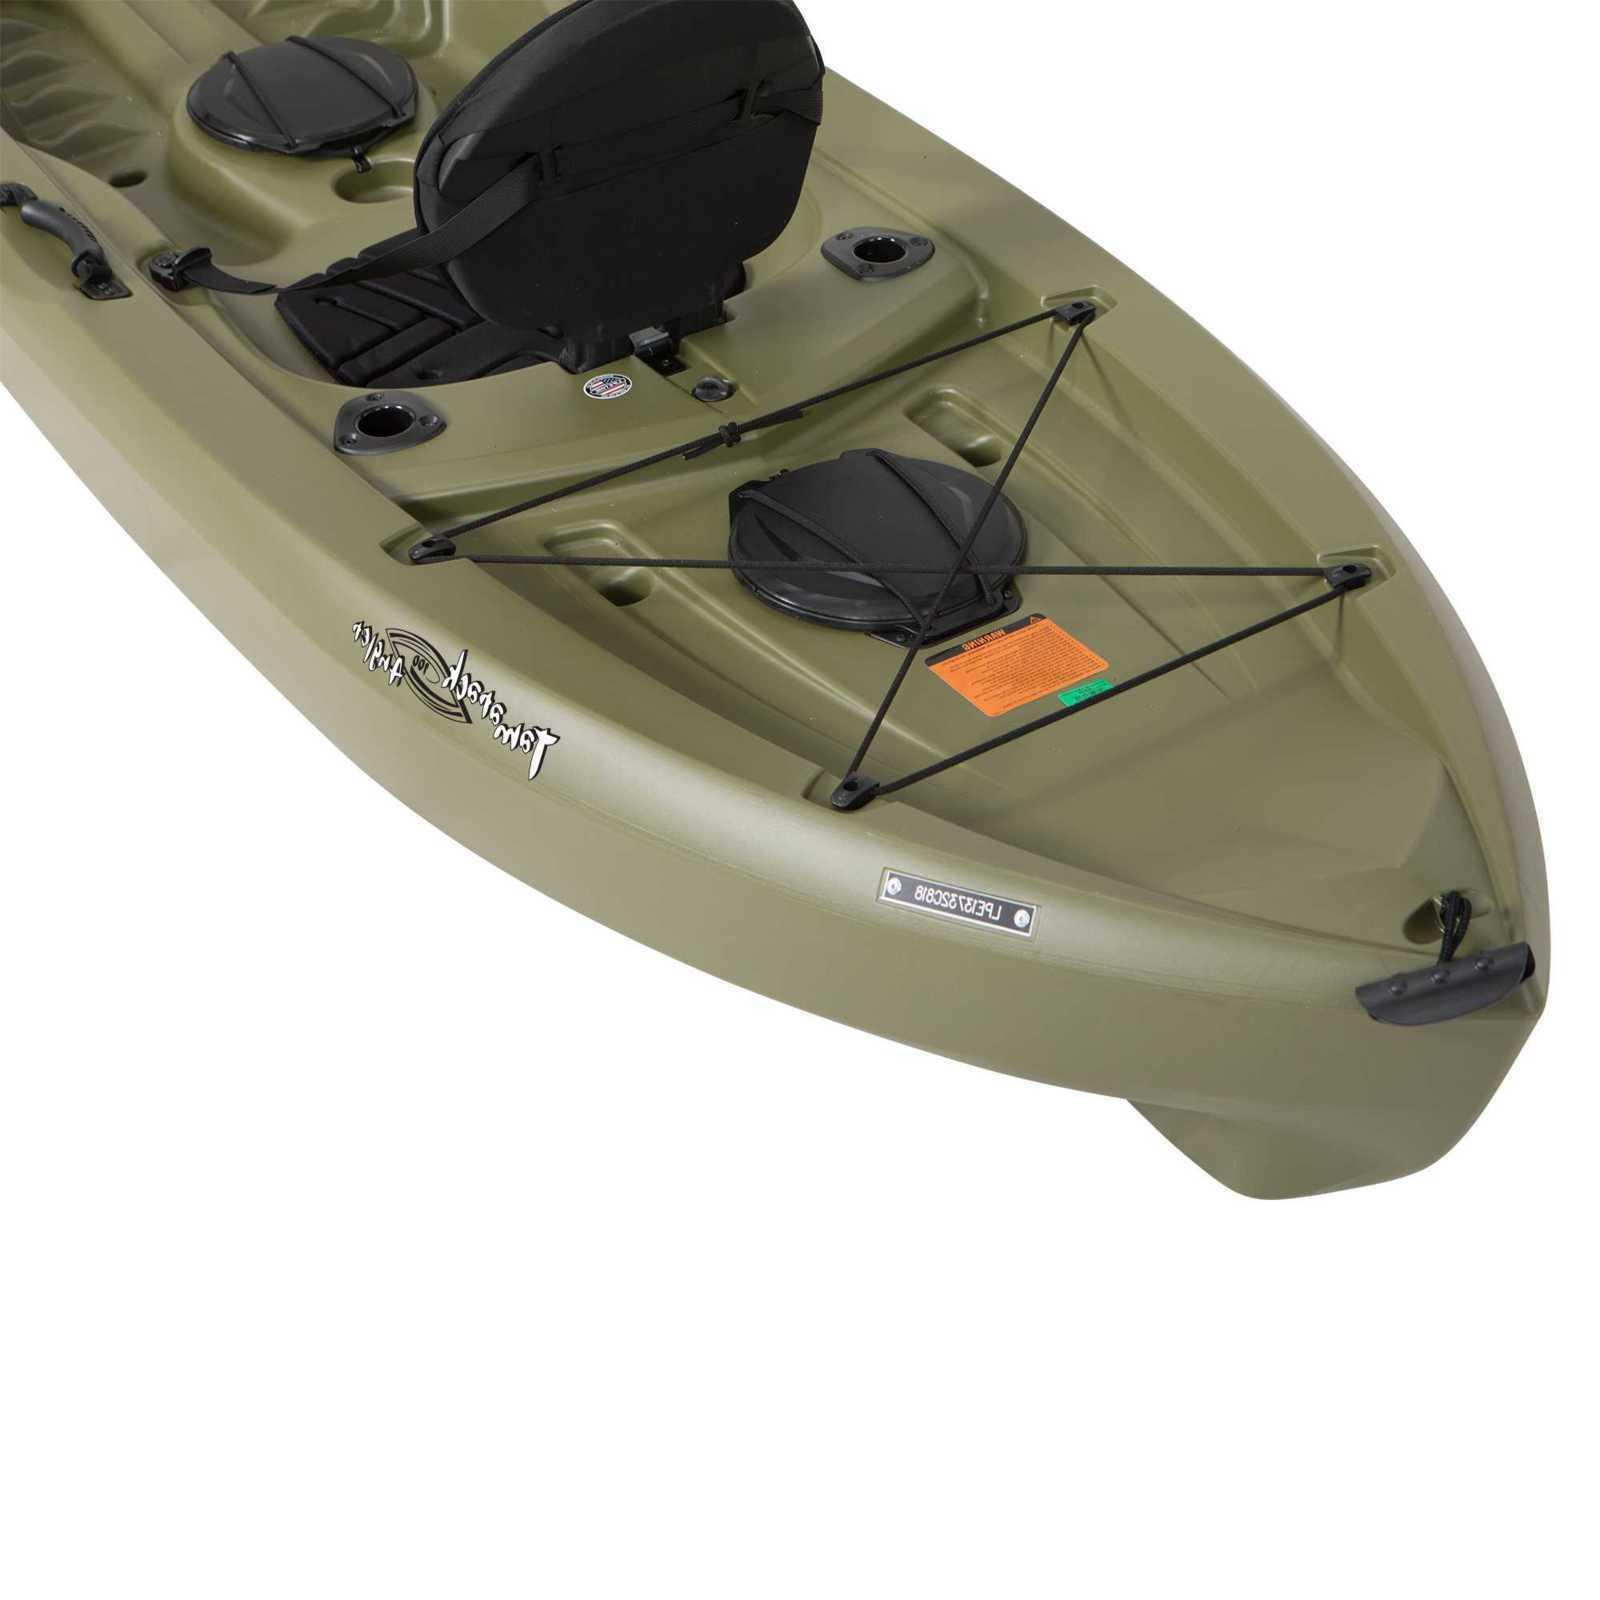 Fishing Kayak Outdoor Adventure Sport